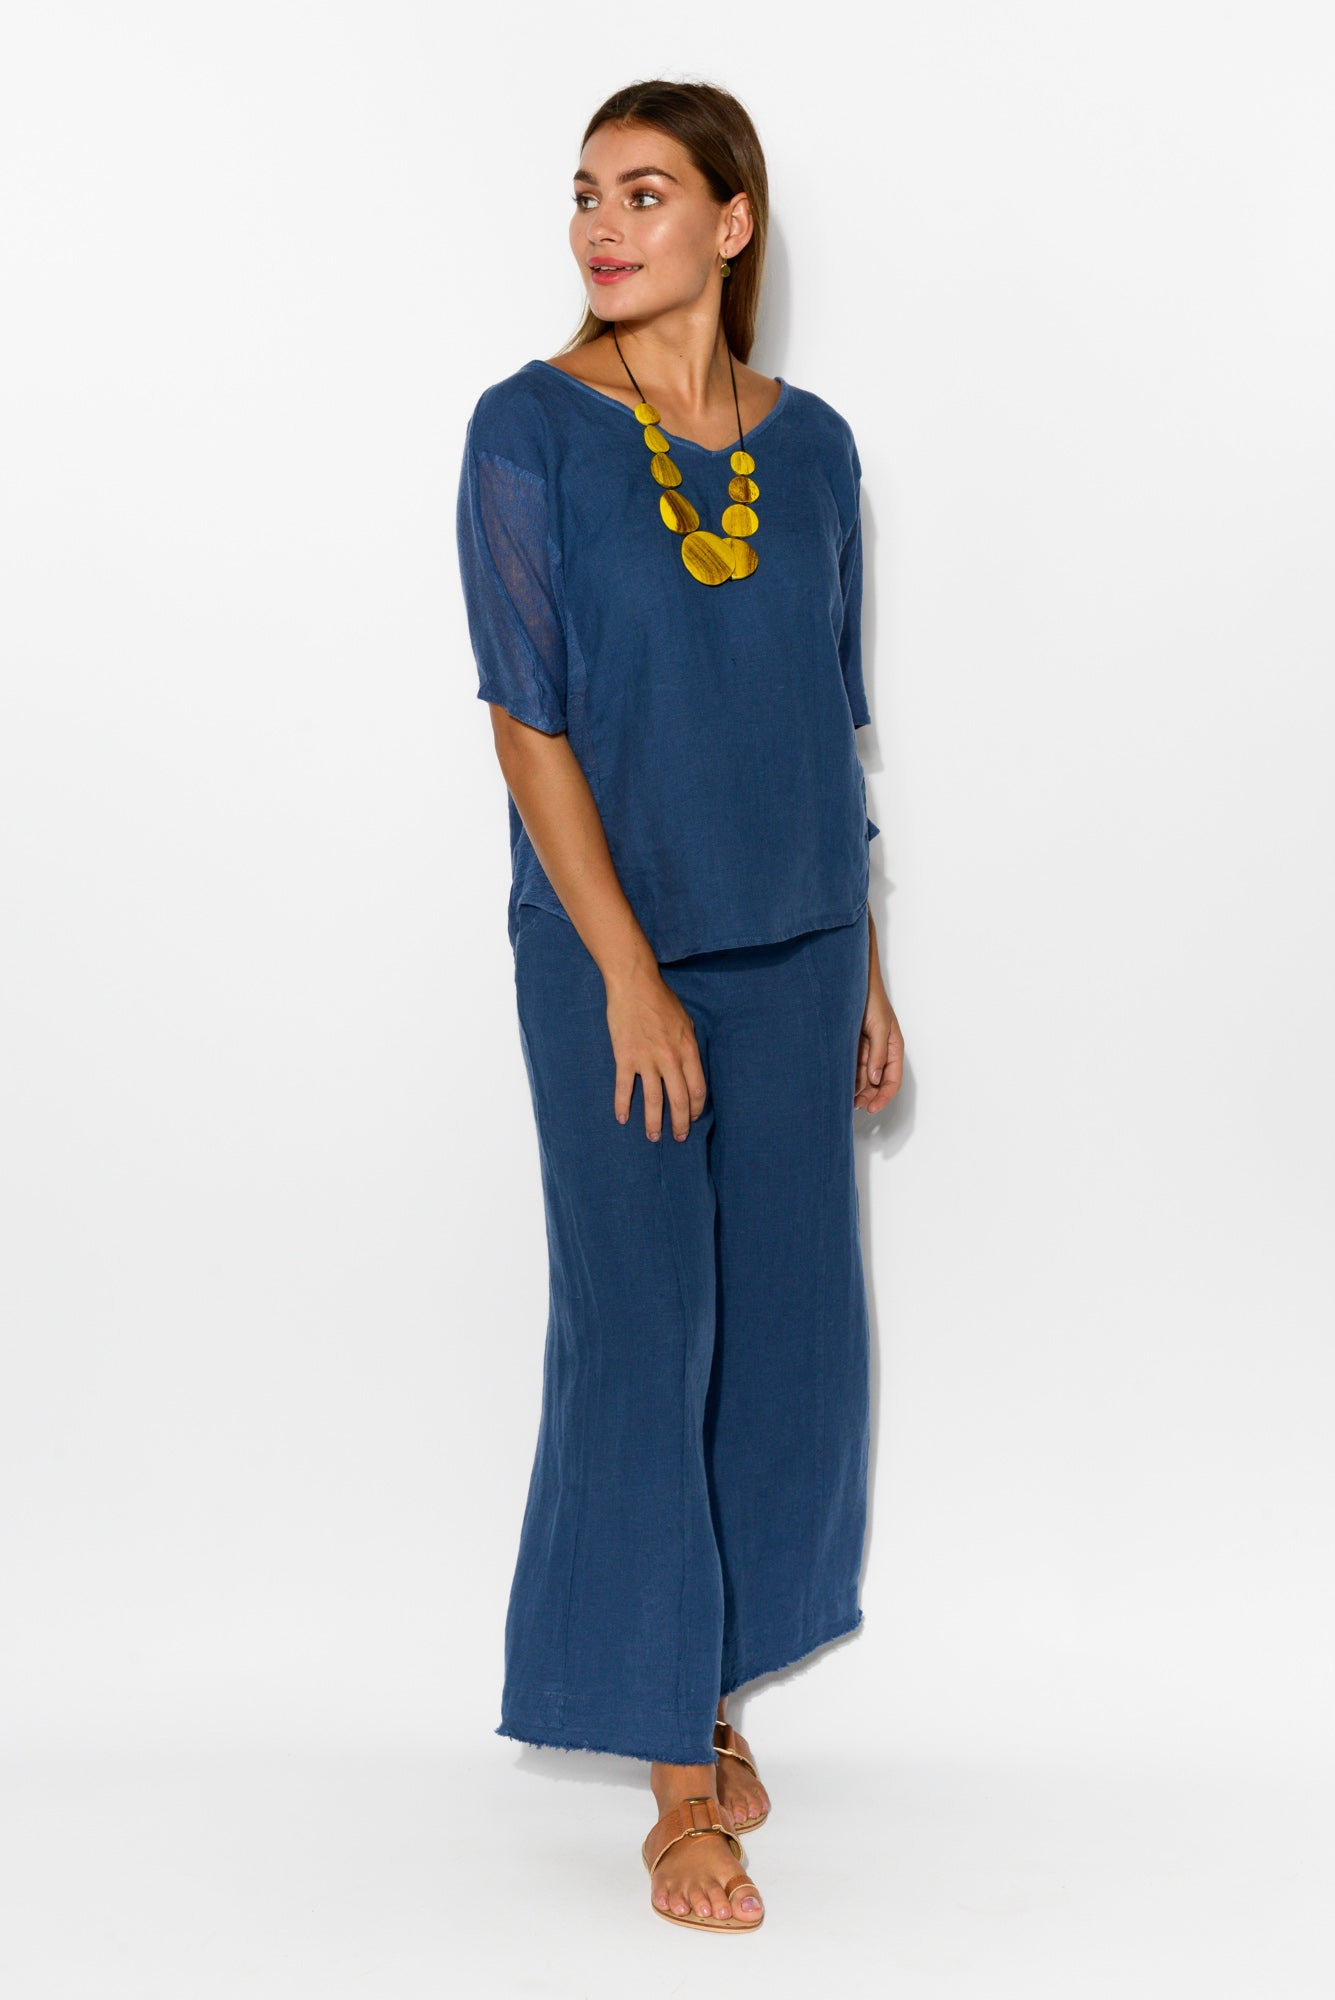 Livorno Blue Linen Top - Blue Bungalow